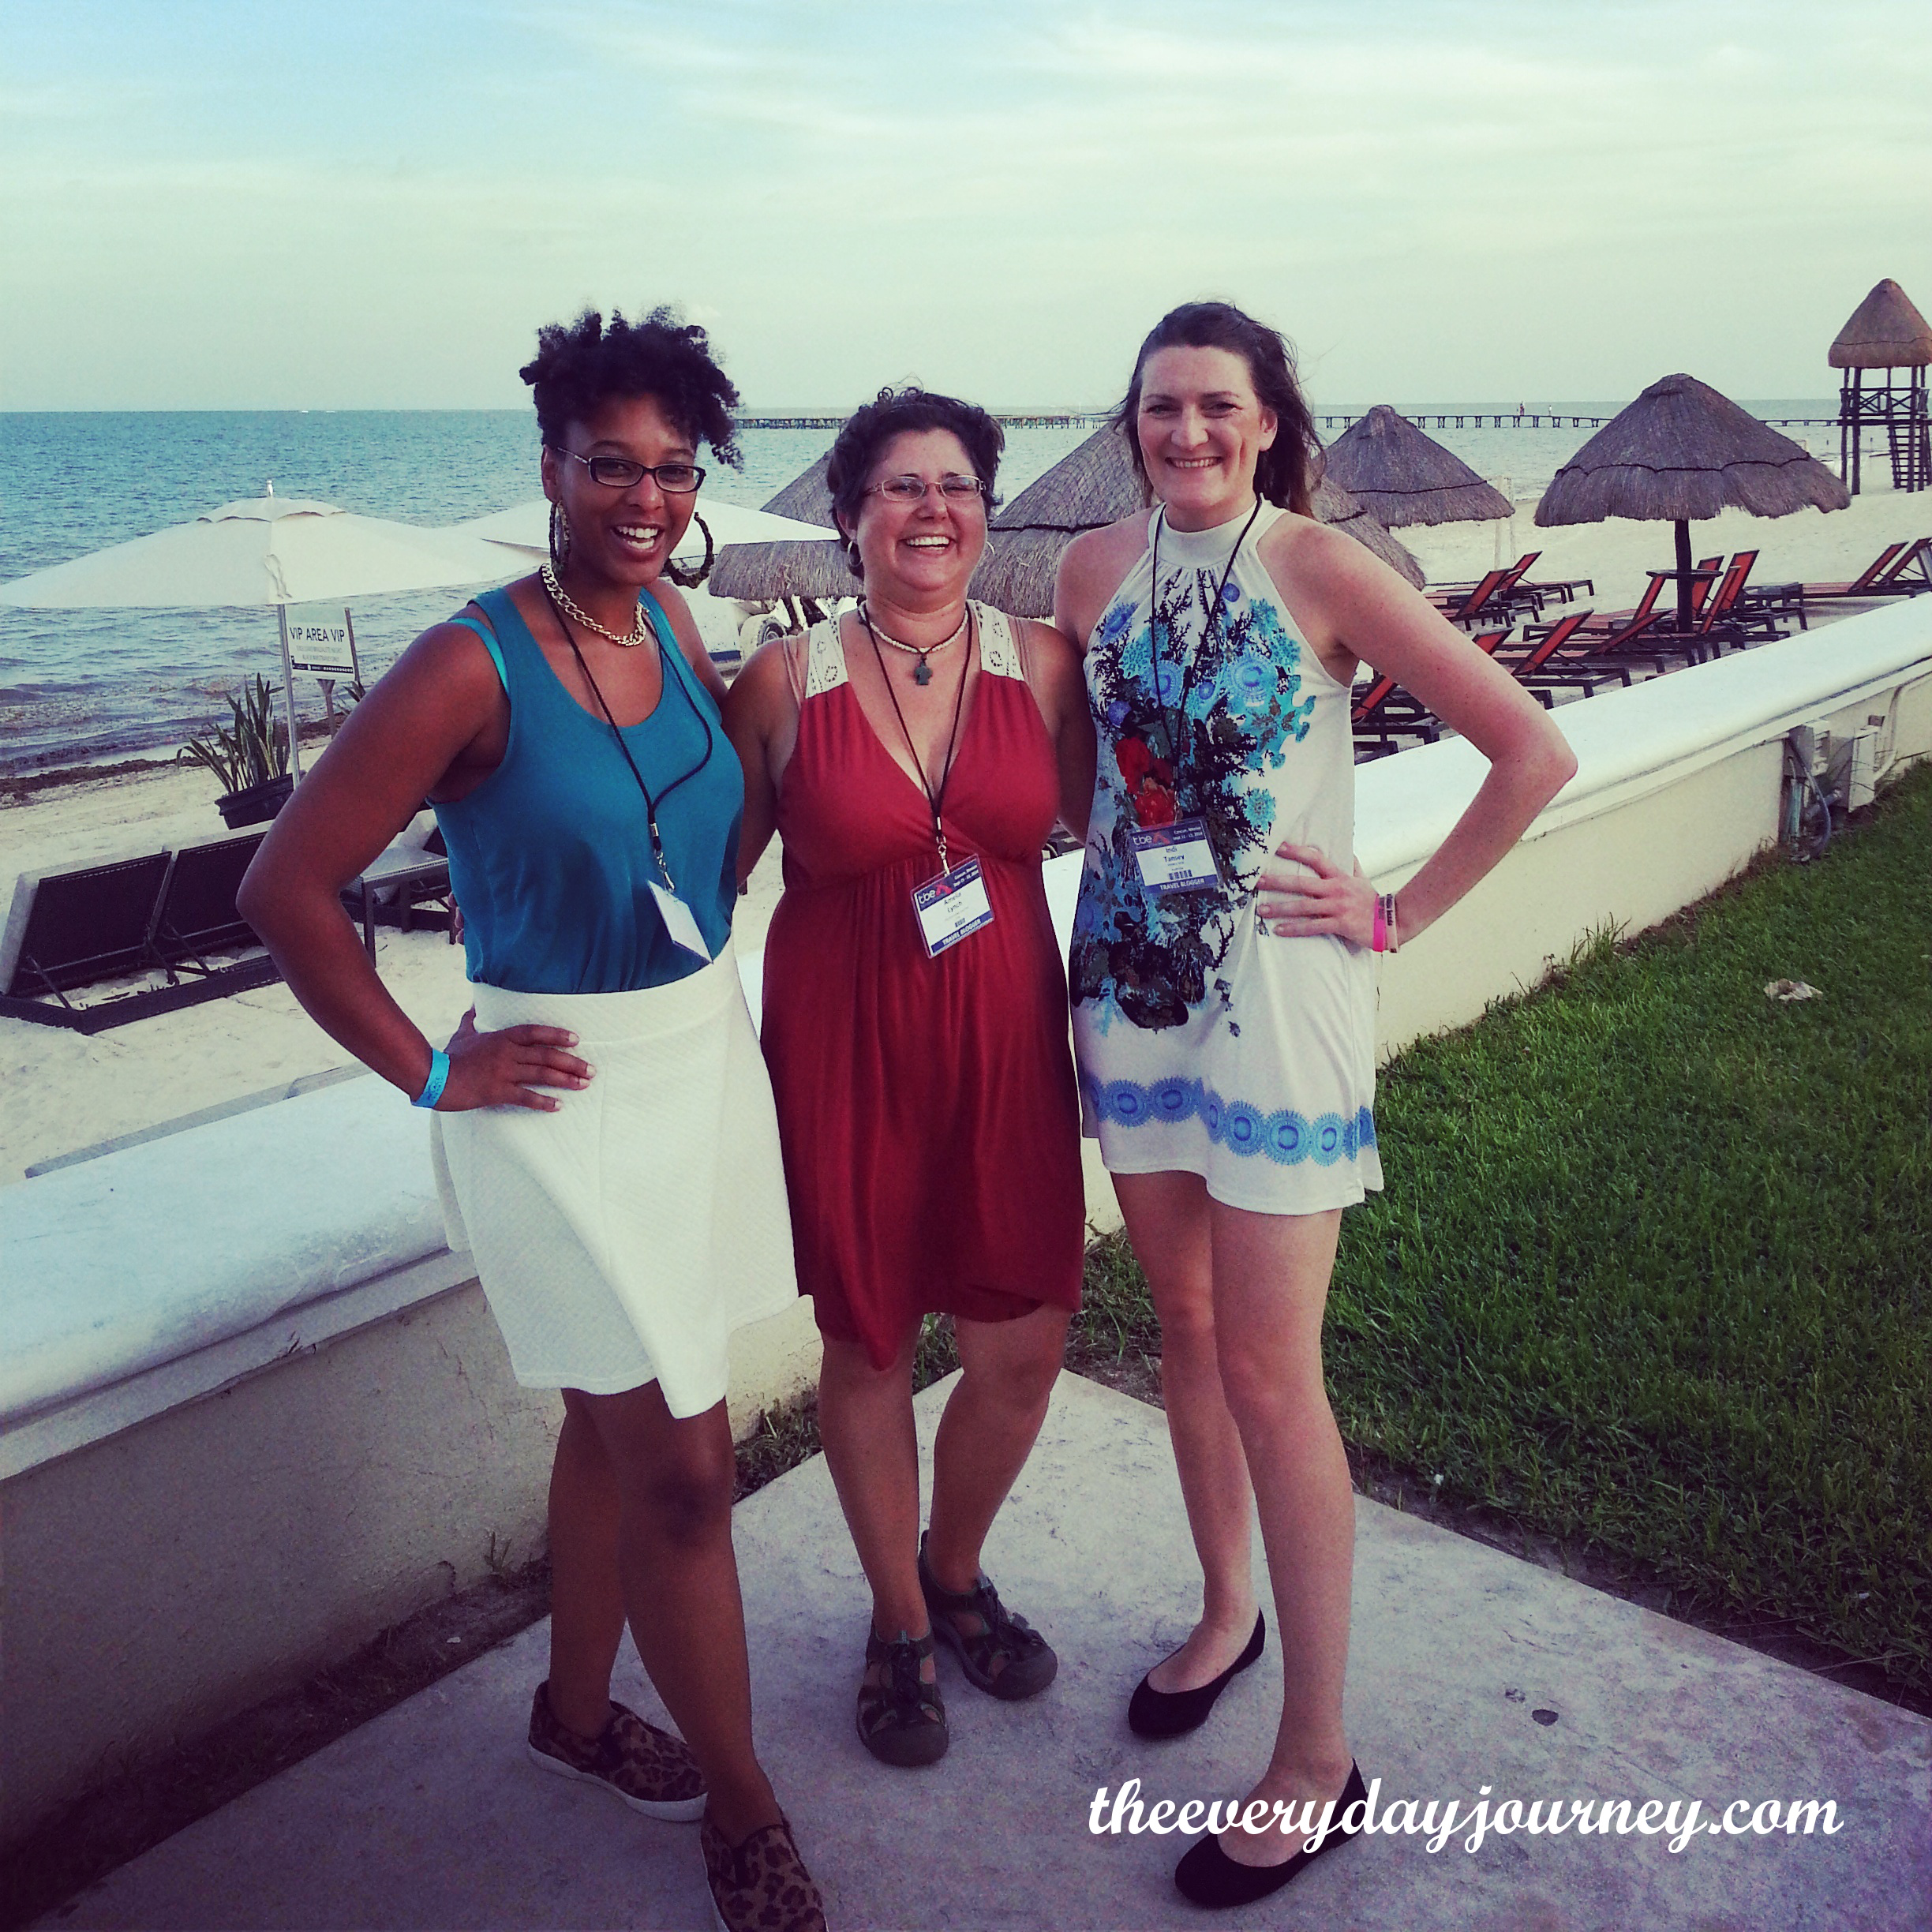 Bloggers after hours: Gypsy Jaunt, me and Indiana June.